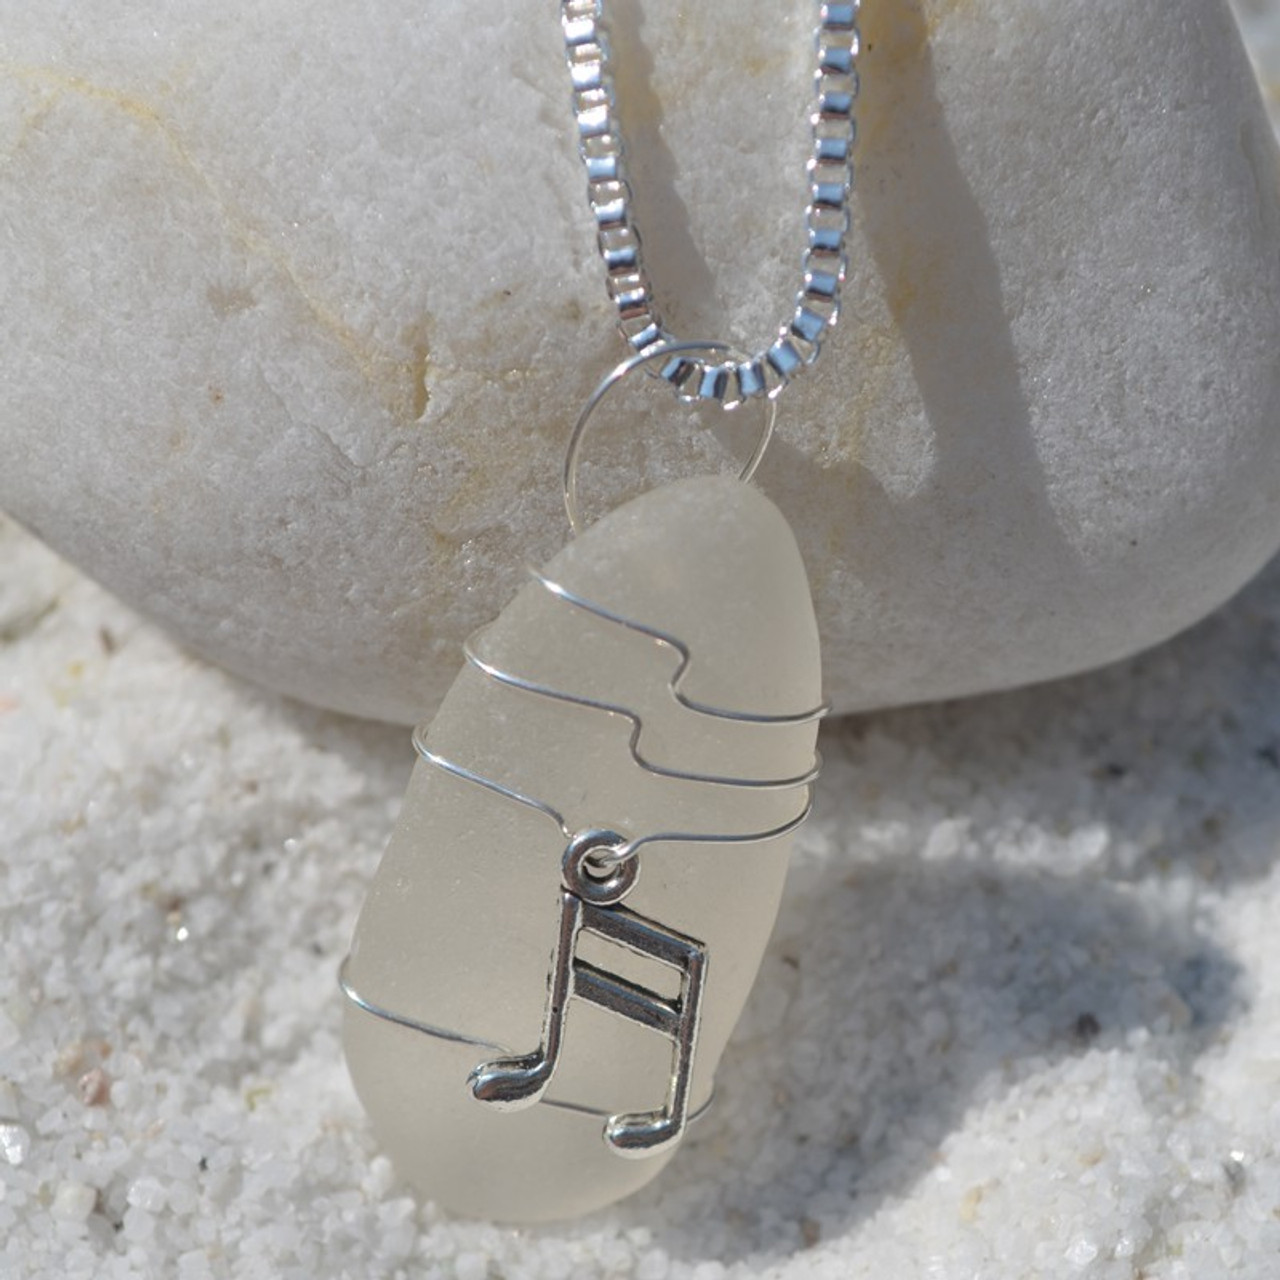 Sea Glass Necklace with a Silver Musical Notes Charm - Choose the Color - Frosted, Green, Brown, or Aqua - Made to Order